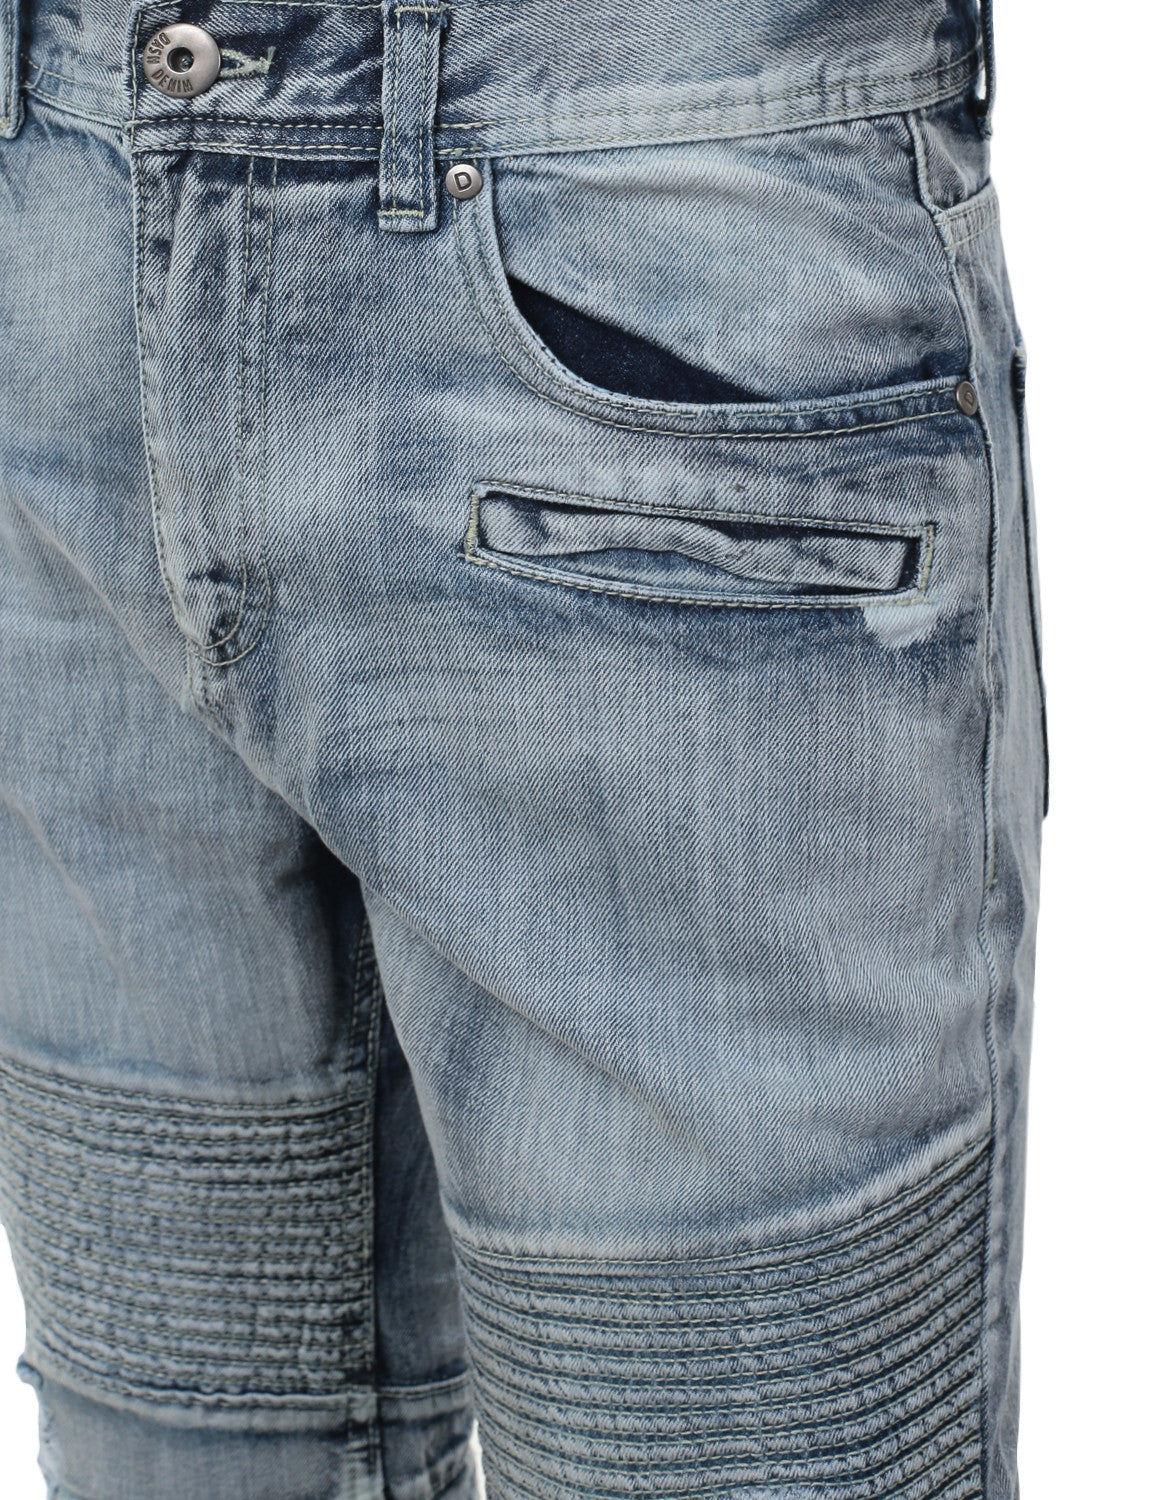 Washed Slim Fit Denim Biker Ribbed Jeans - URBANCREWS - 11